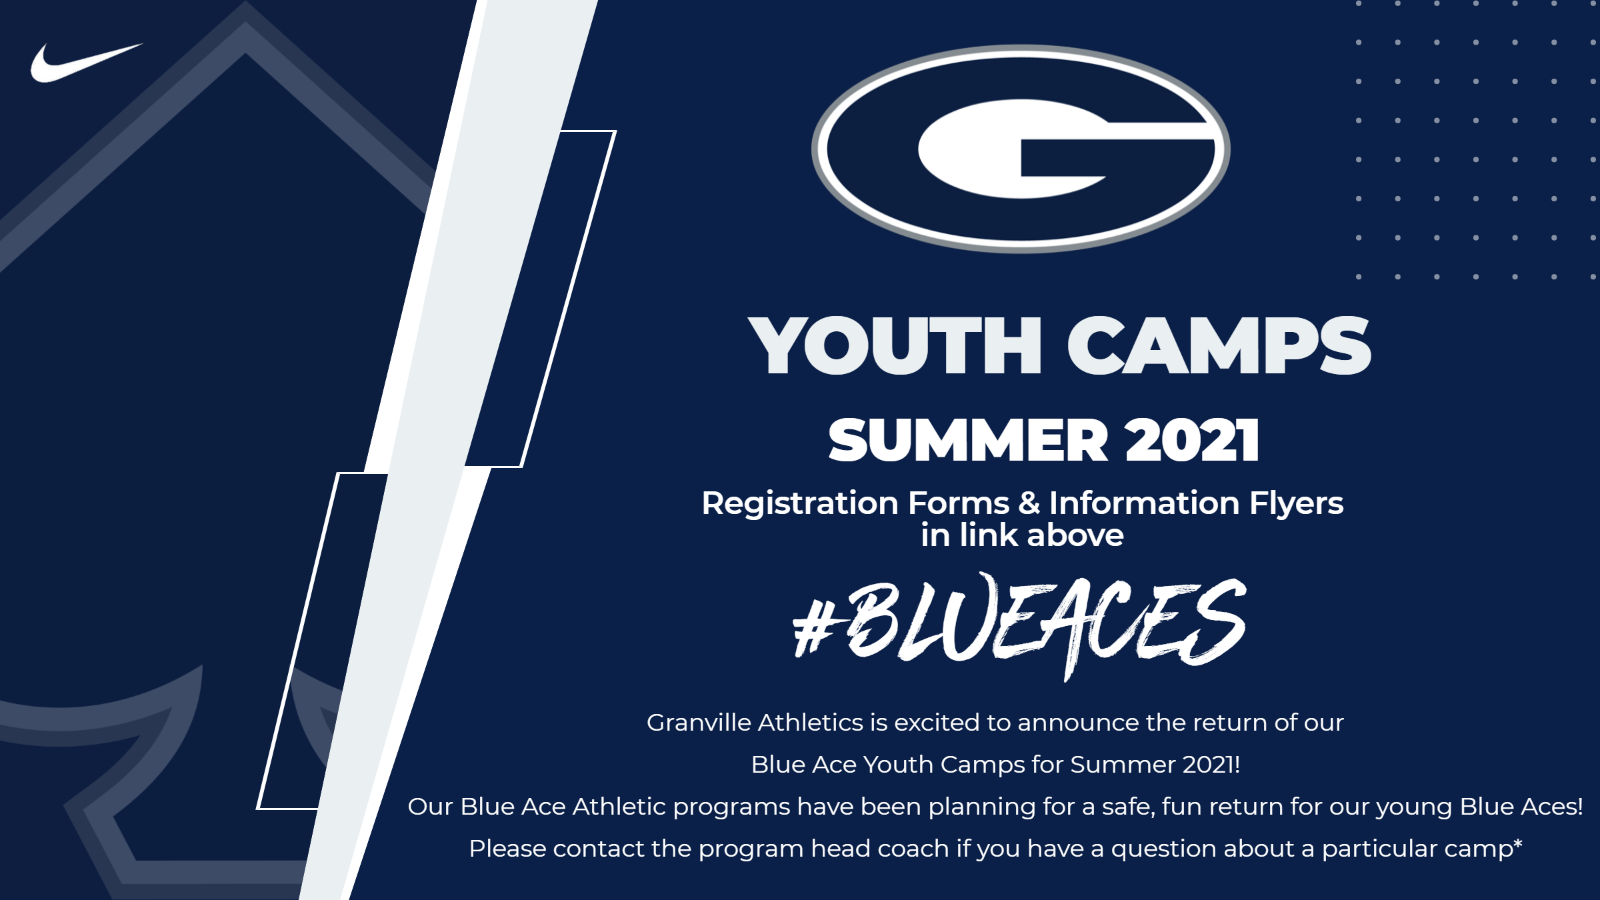 Summer Youth Camps 2021